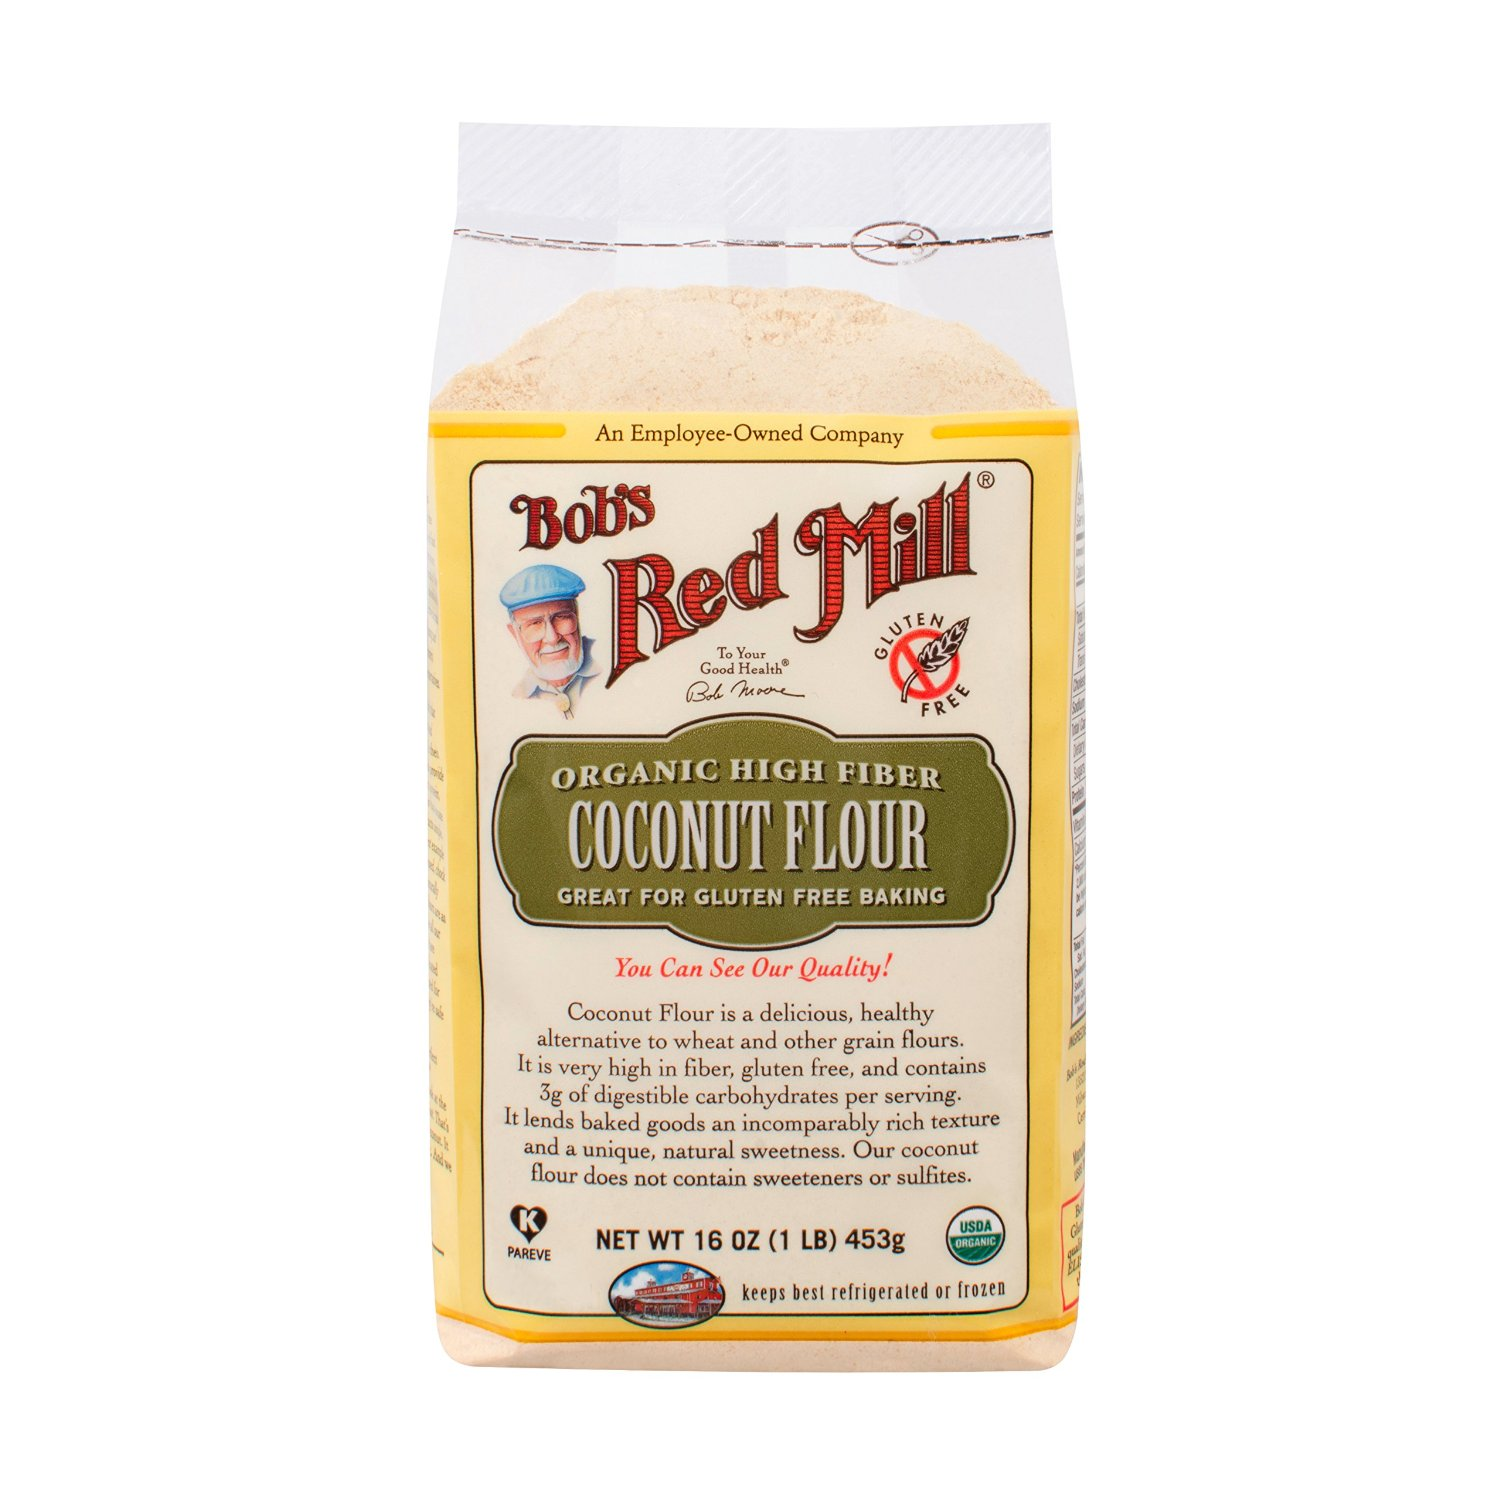 Bob's Red Mill Organic Coconut Flour, 16-Ounce Units (Pack of 4) Deal